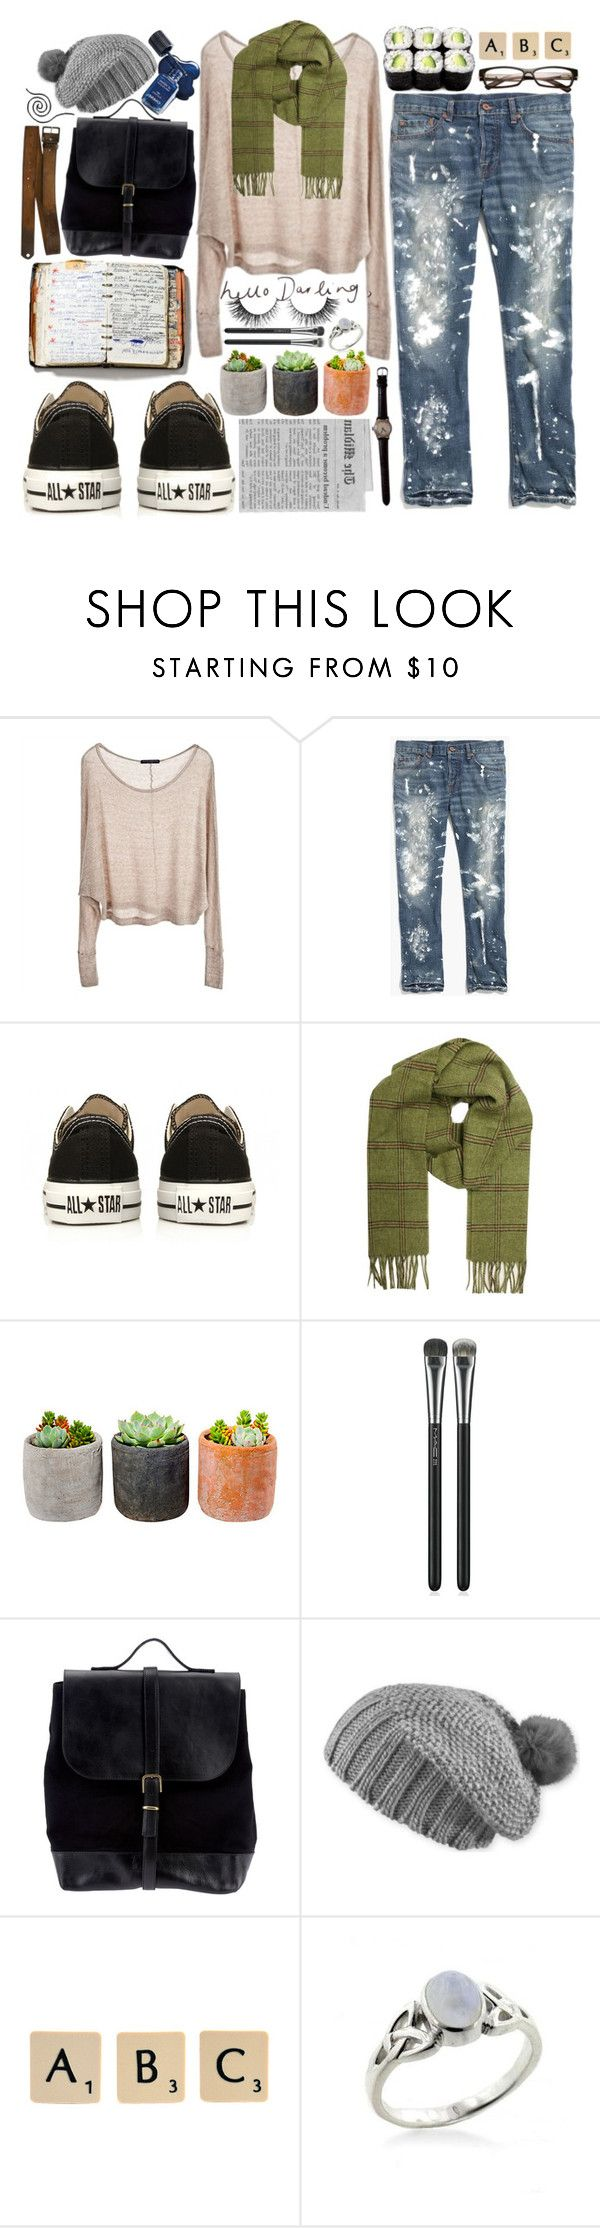 """Have I Said No"" by fallensoul101 ❤ liked on Polyvore featuring Brandy Melville, Madewell, Converse, Barbour, Shop Succulents, Peek, MAC Cosmetics, Steve Mono, Pistil and Katie"